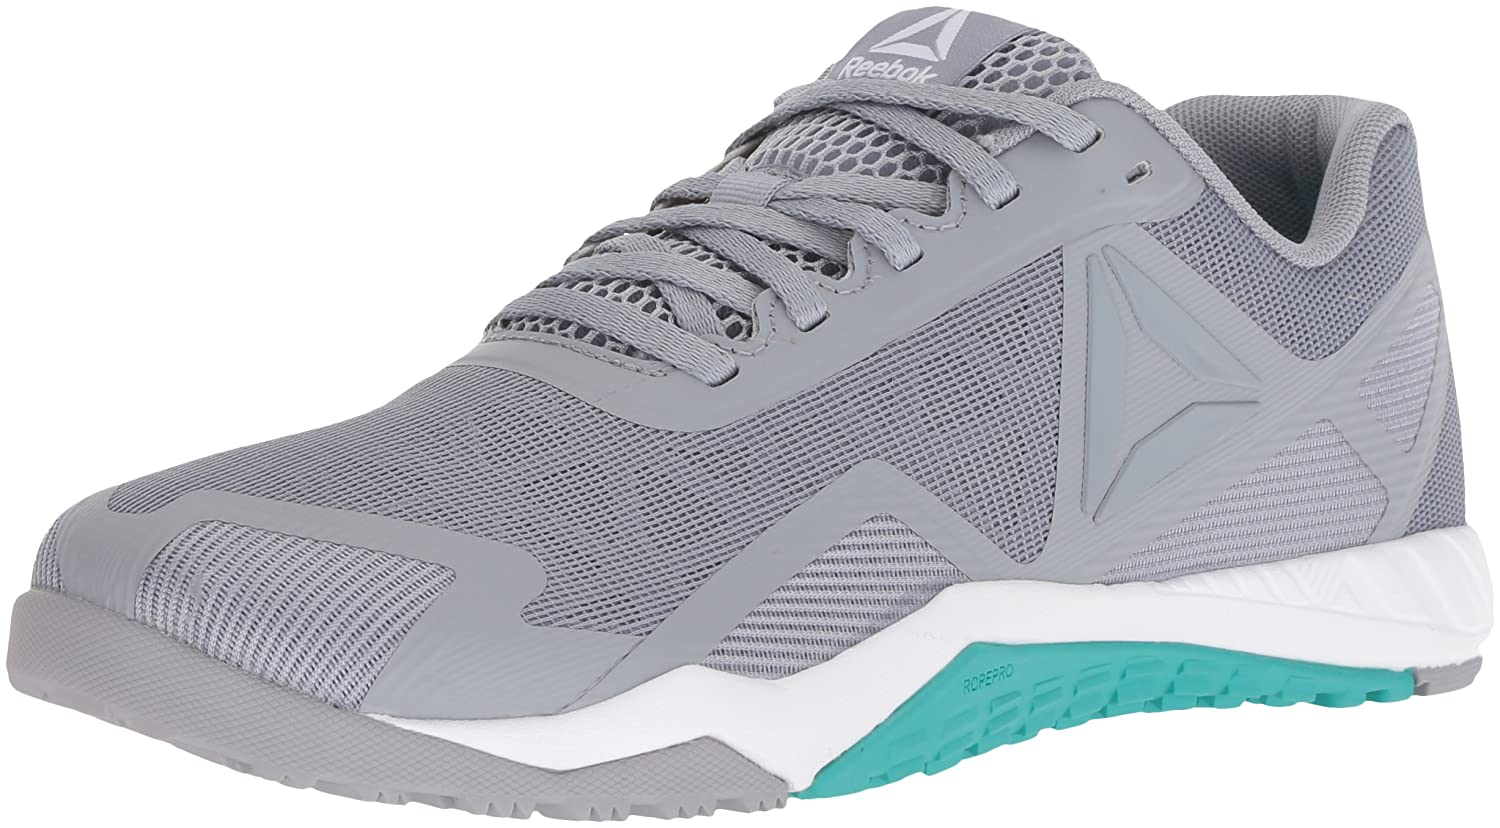 Reebok Women's ROS Workout Tr 2-0 Cross-Trainer Shoe B07176WXHR 7 B(M) US|Cool Shadow/Solid Teal/White